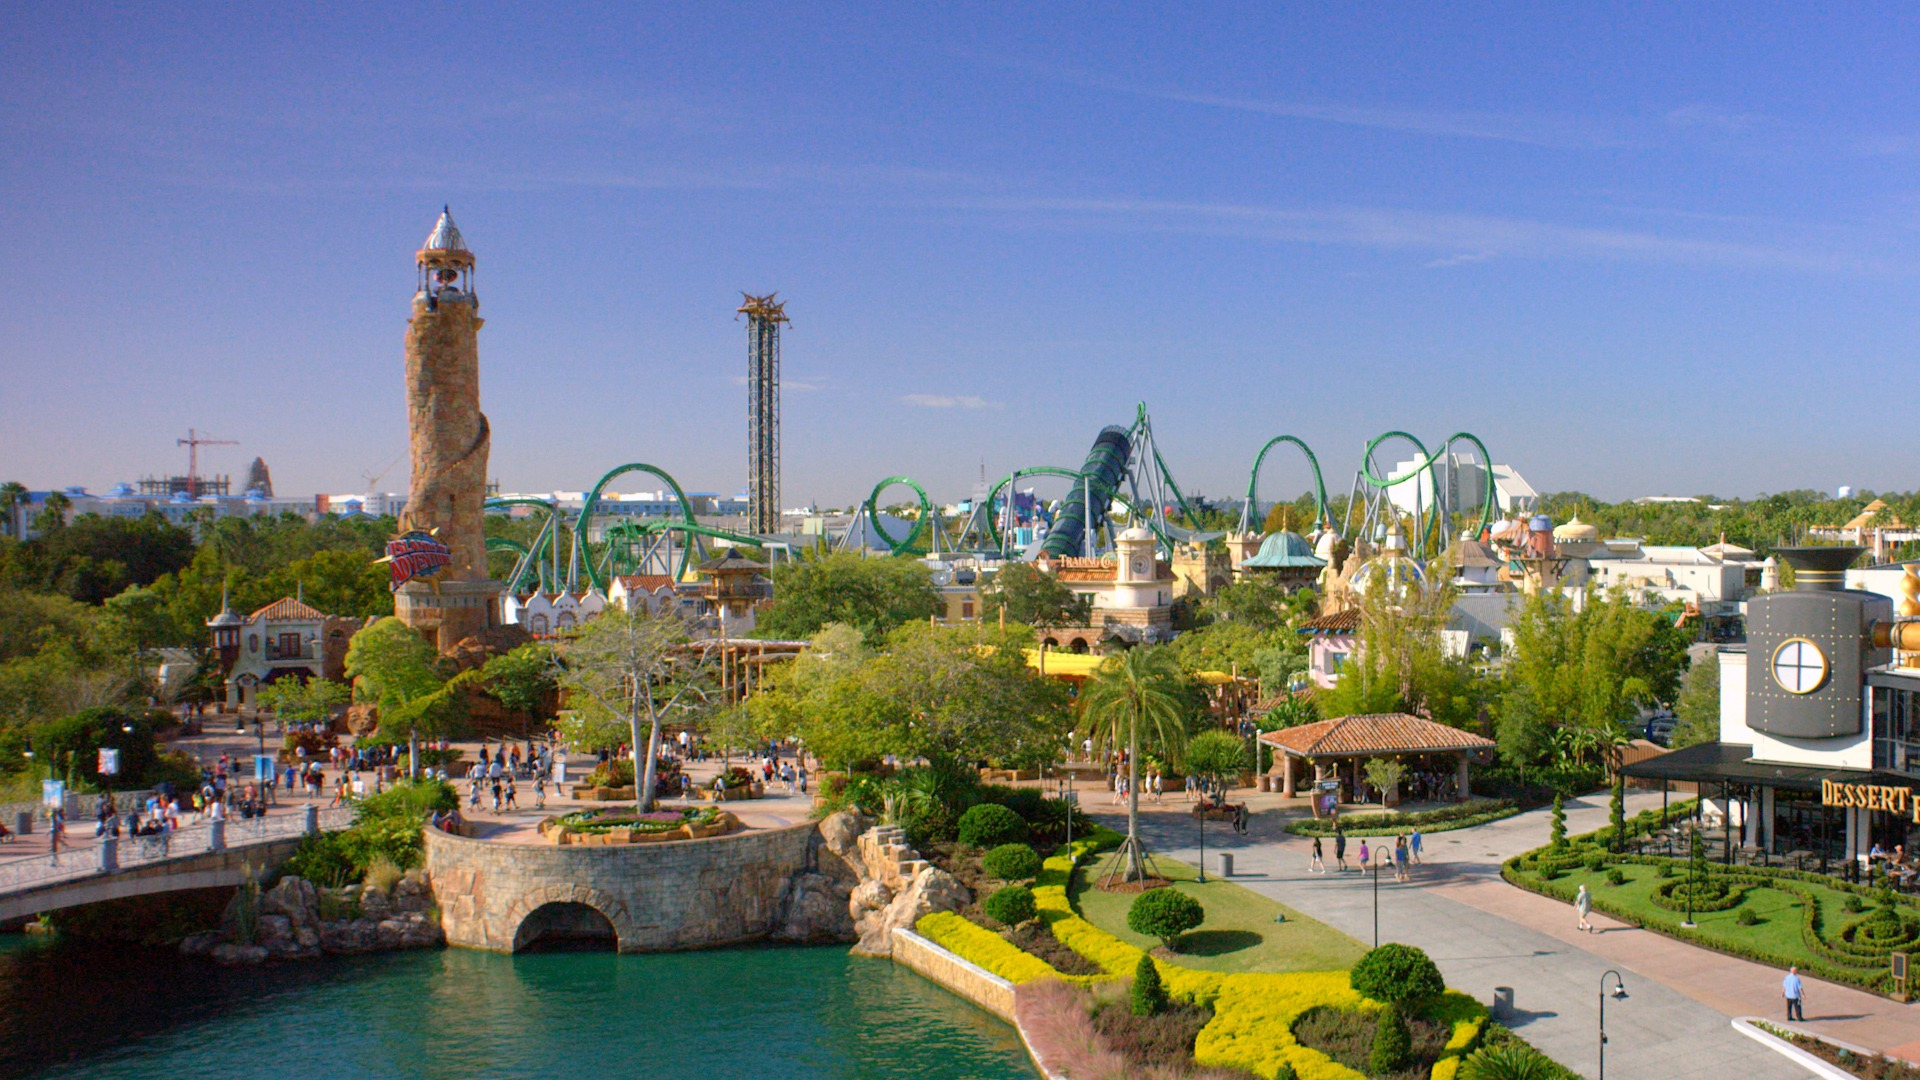 An overview of Universal's Islands of Adventure with the Hulk rollercoaster and more in the background.